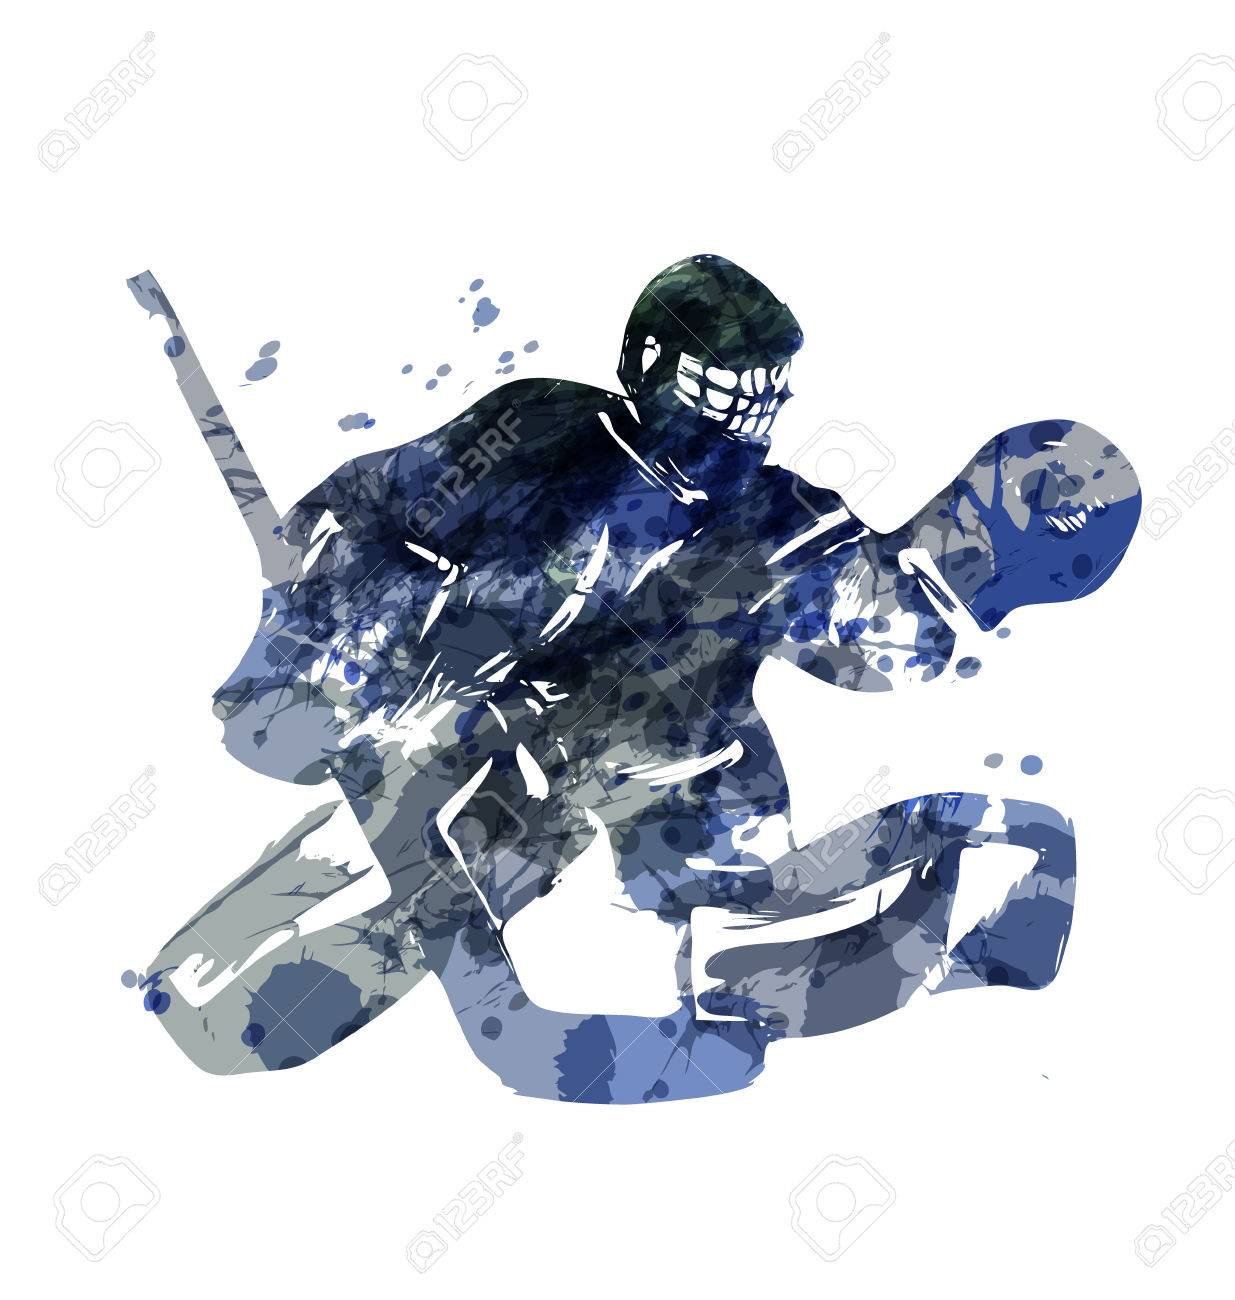 Watercolor Silhouette Hockey Goalie Vector Illustration Royalty